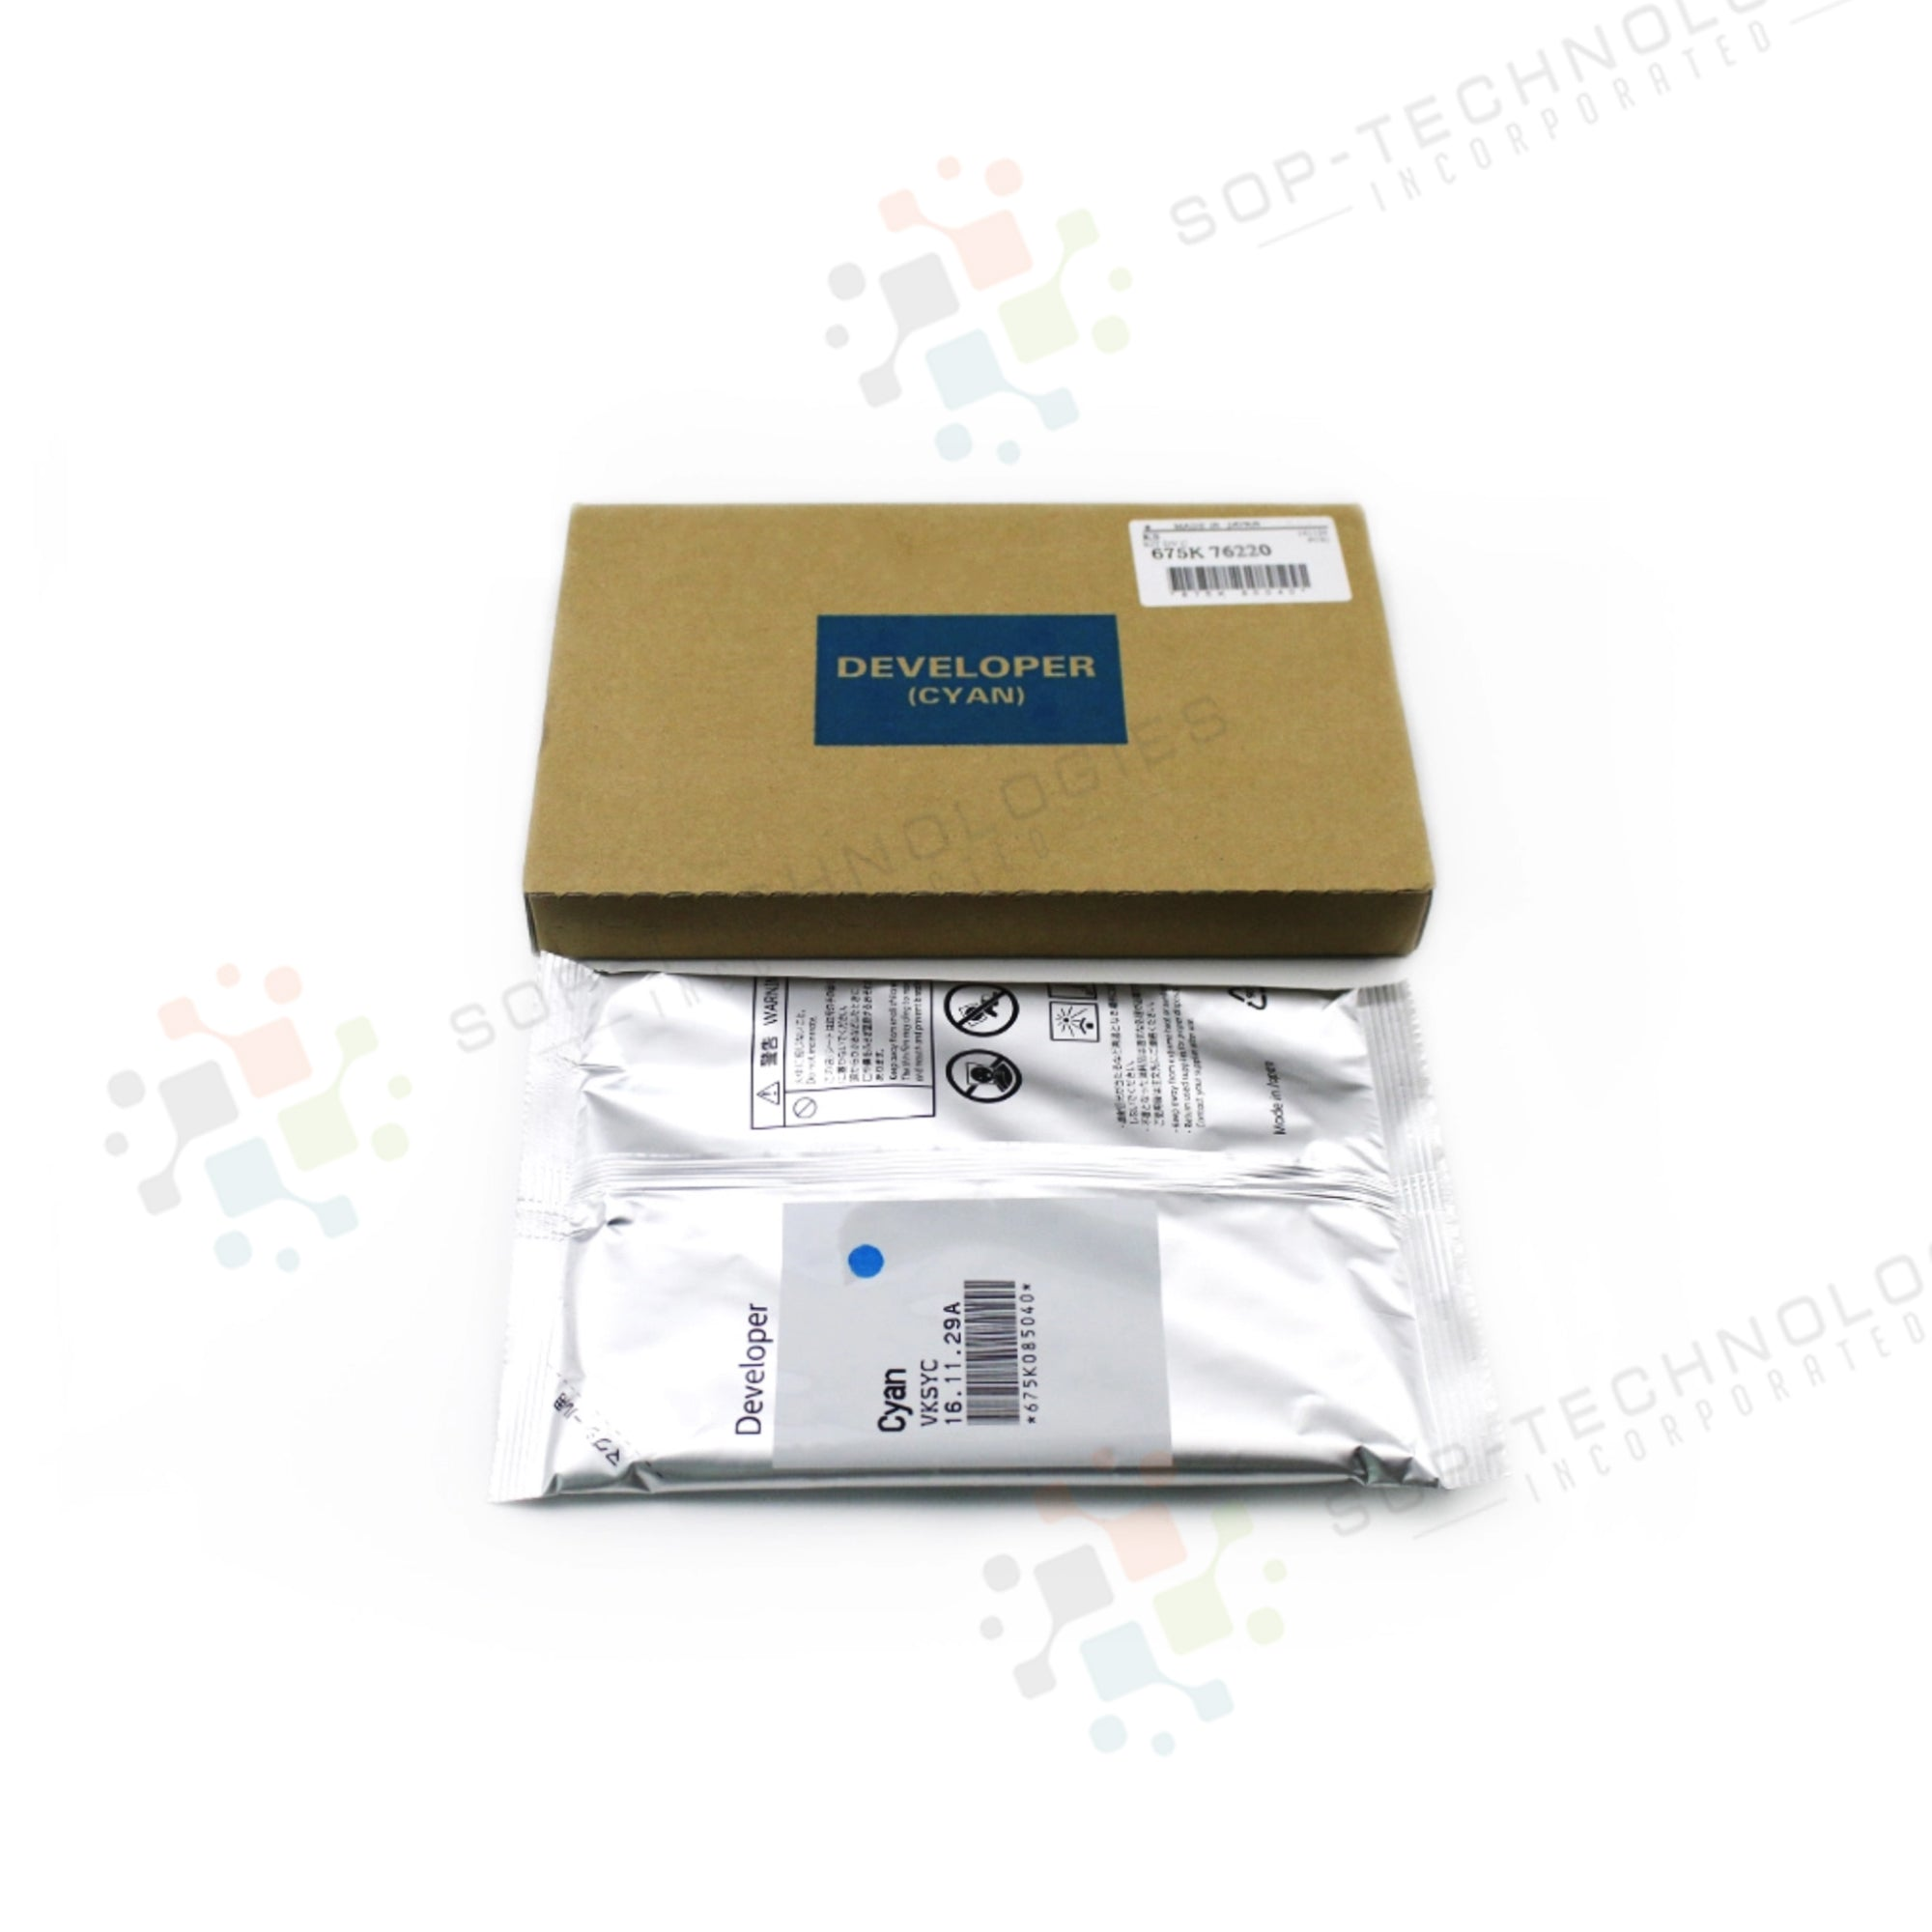 Original Xerox Color 550/560/570/700/700i DC  Developer Cyan 675K76220 - SOP-TECHNOLOGIES, INC.